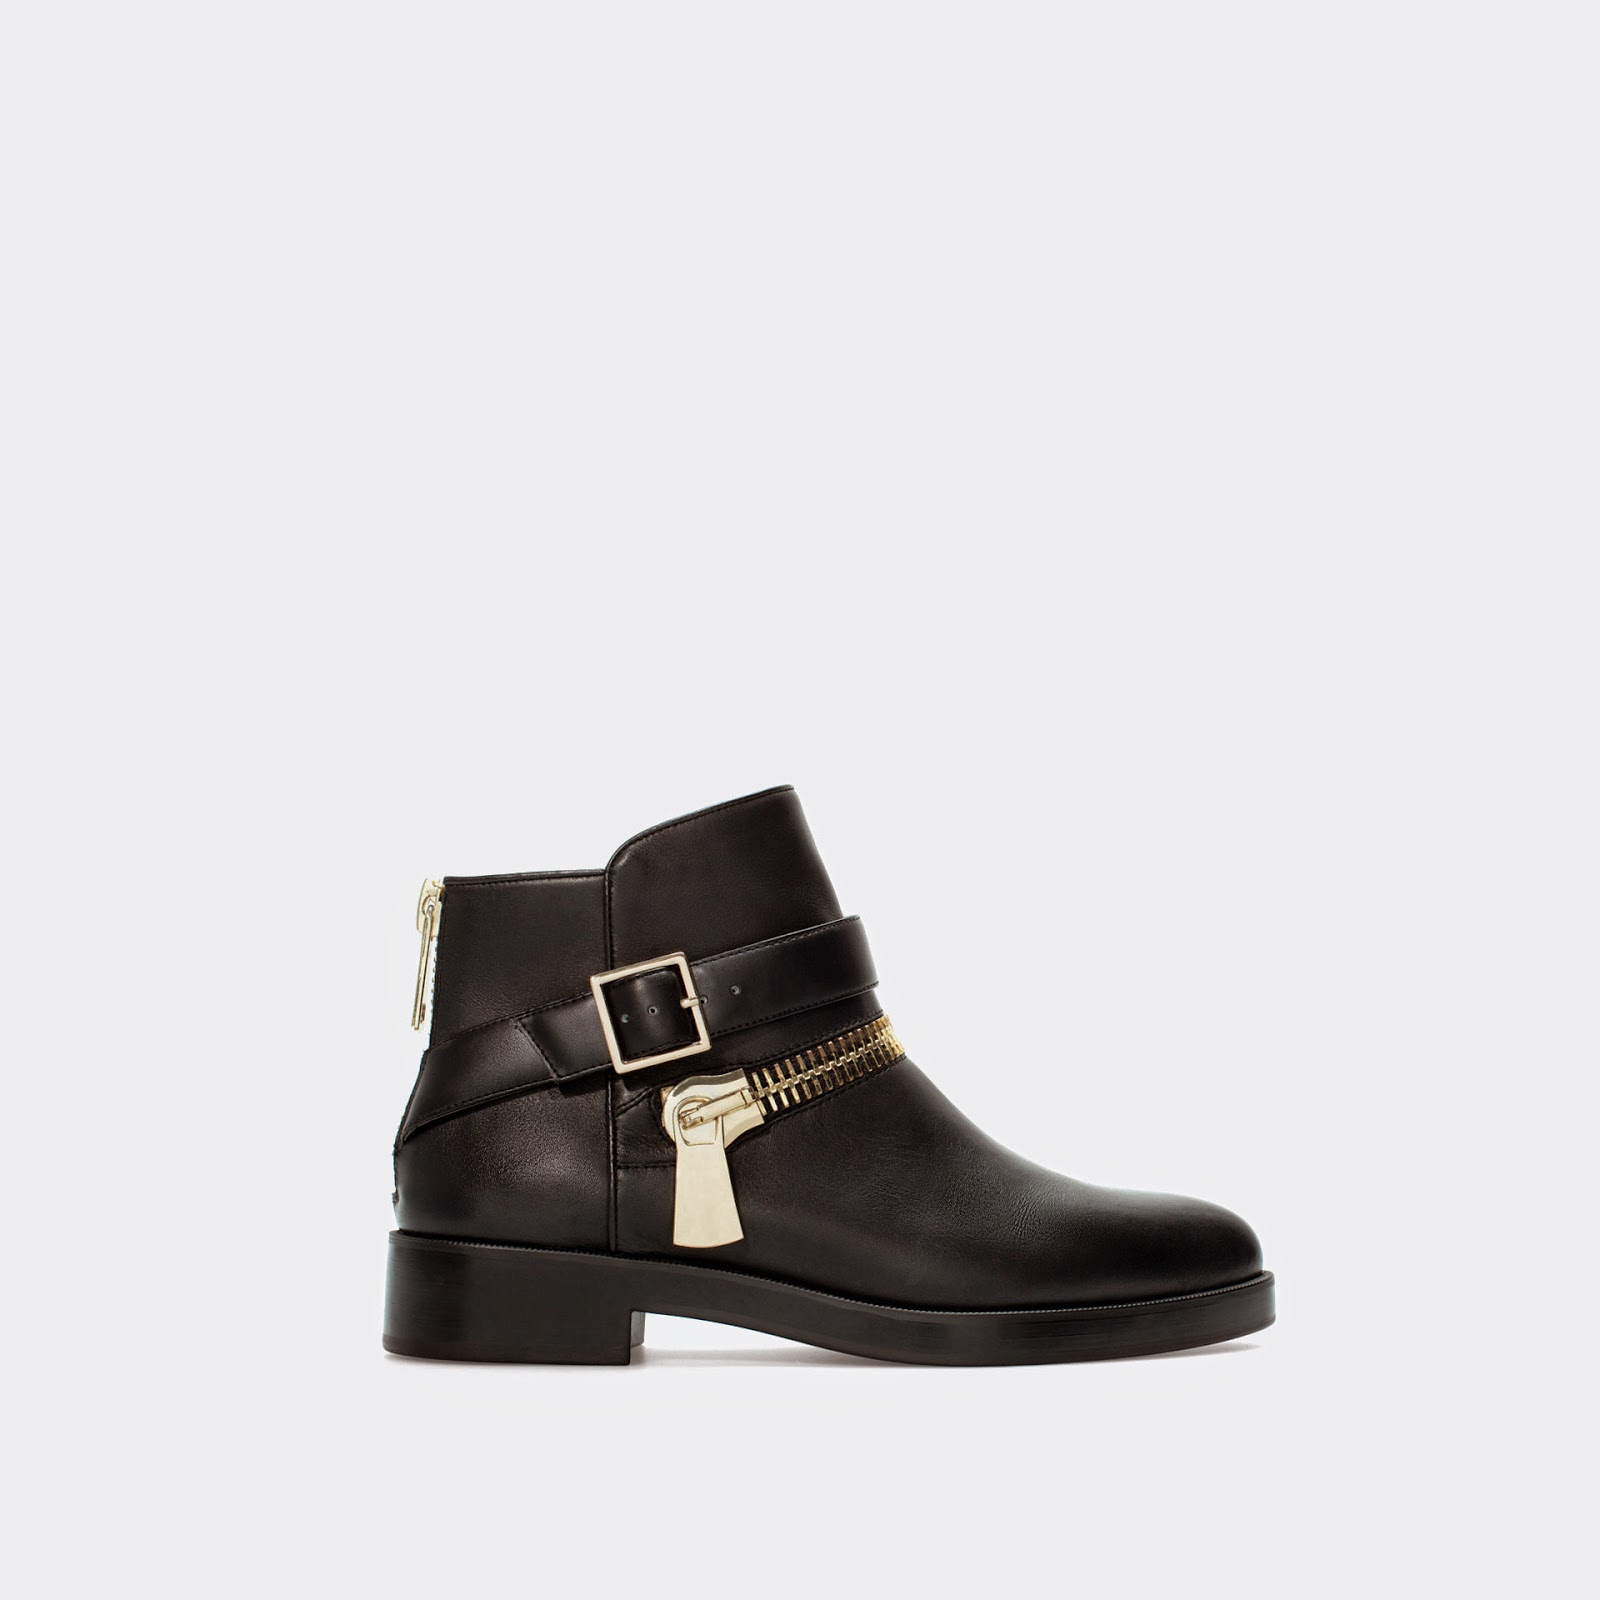 zara leather zip buckle boot